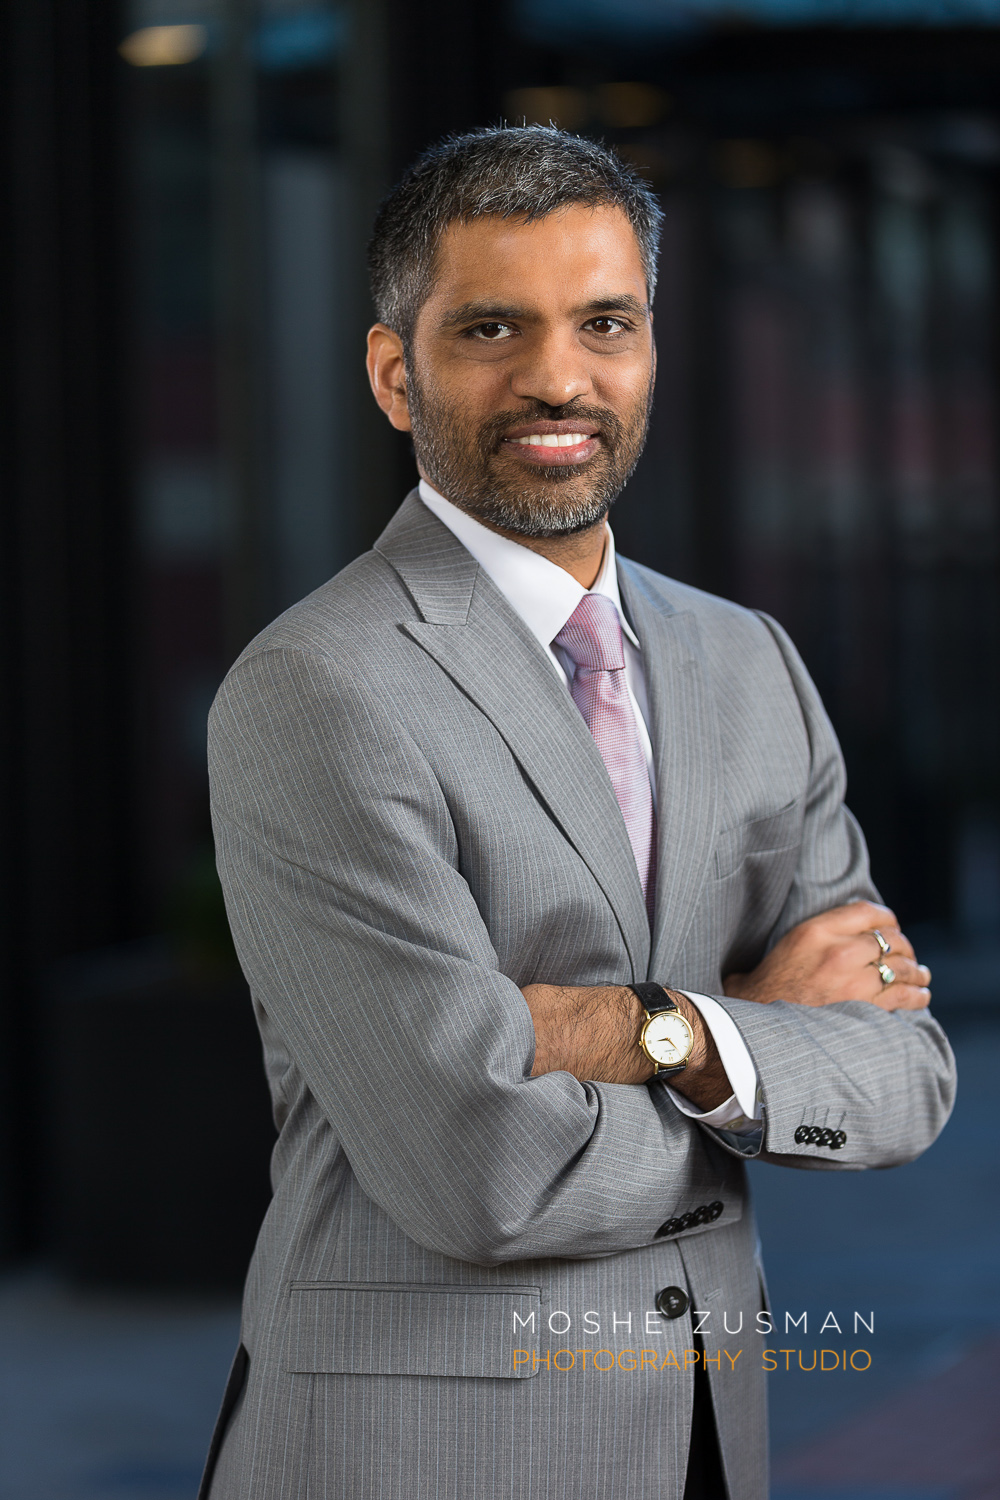 USGBC-Mahesh-corporate-head-shot-moshe-zusman-dc-2.jpg